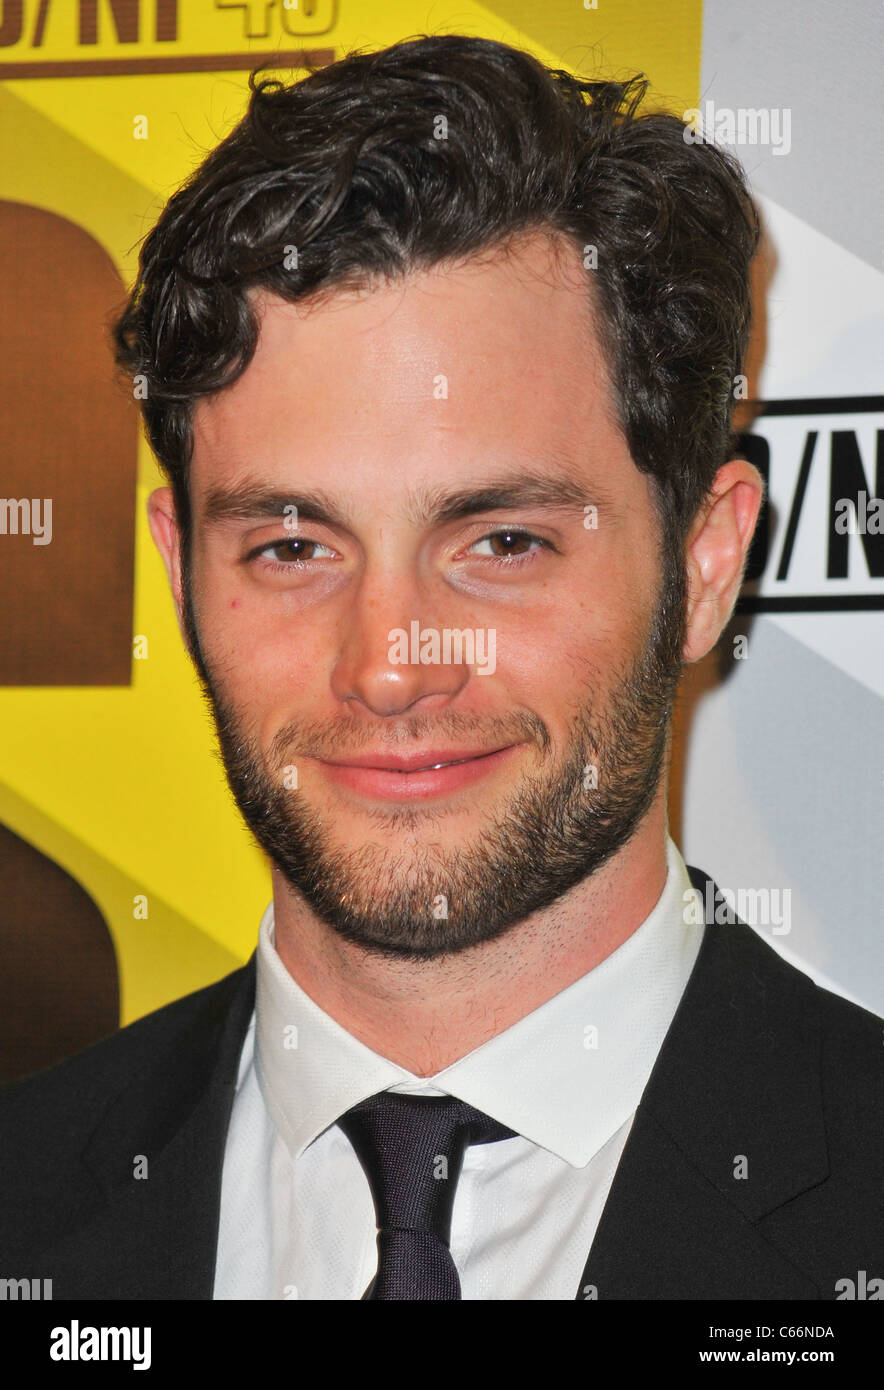 Penn Badgley at arrivals for MARGIN CALL Premiere, MoMA Museum of Modern Art, New York, NY March 23, 2011. Photo - Stock Image